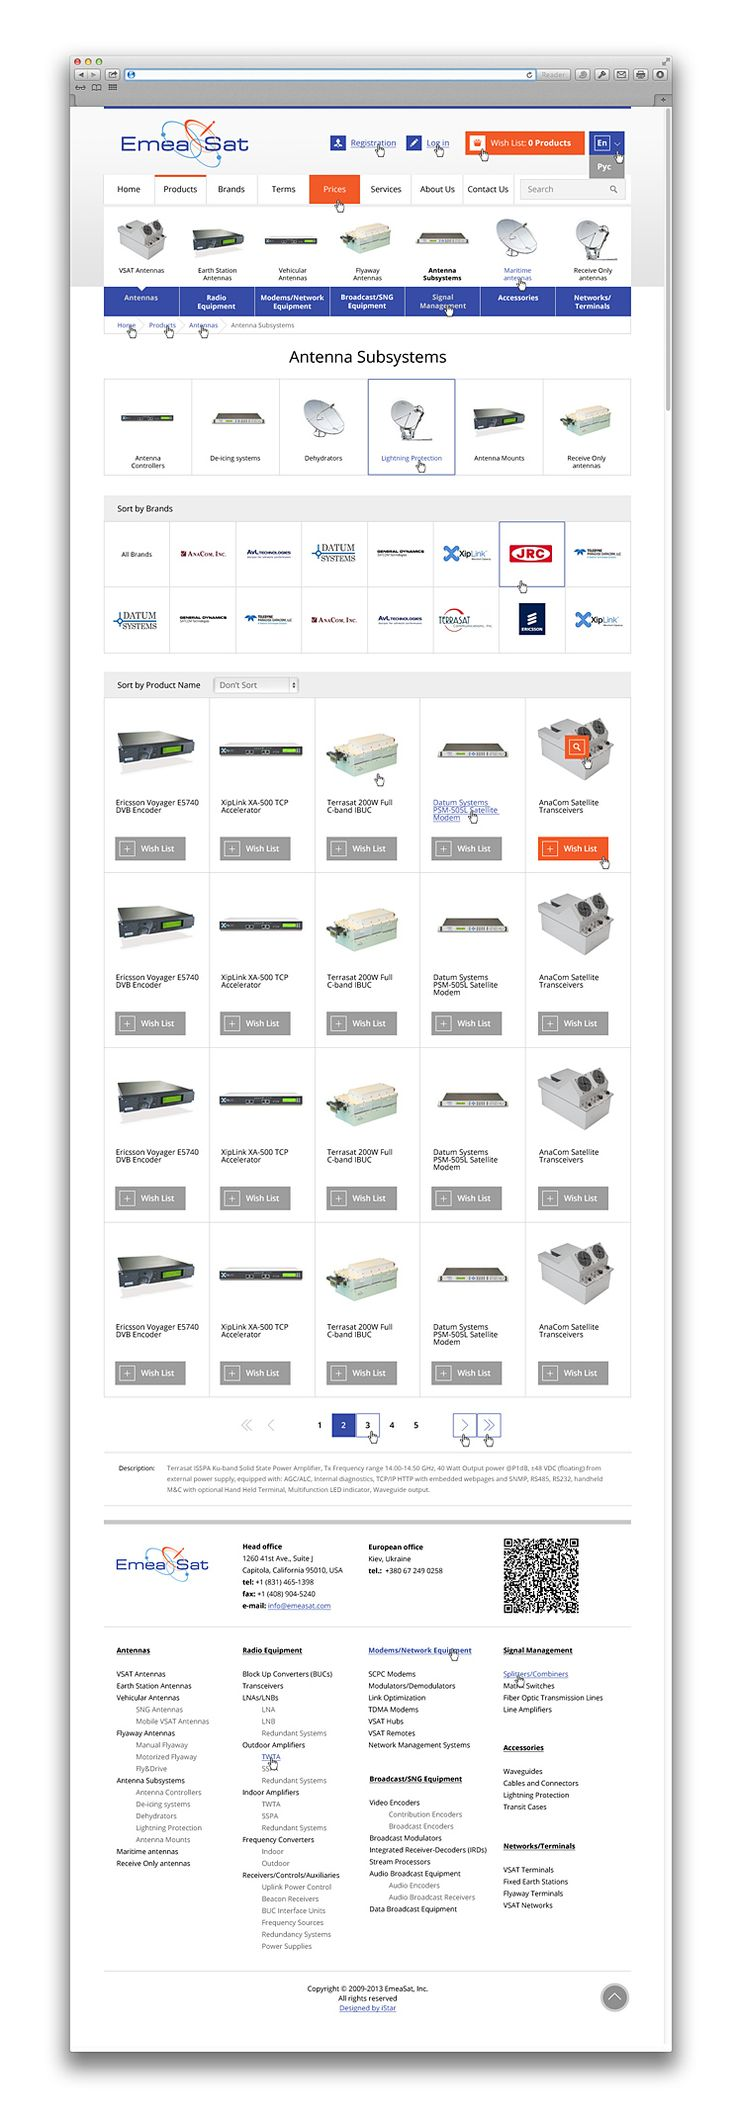 Online store EmeaSat designed by iStar Design. EmeaSat supplies equipment and services for satellite communication and broadcasting systems.